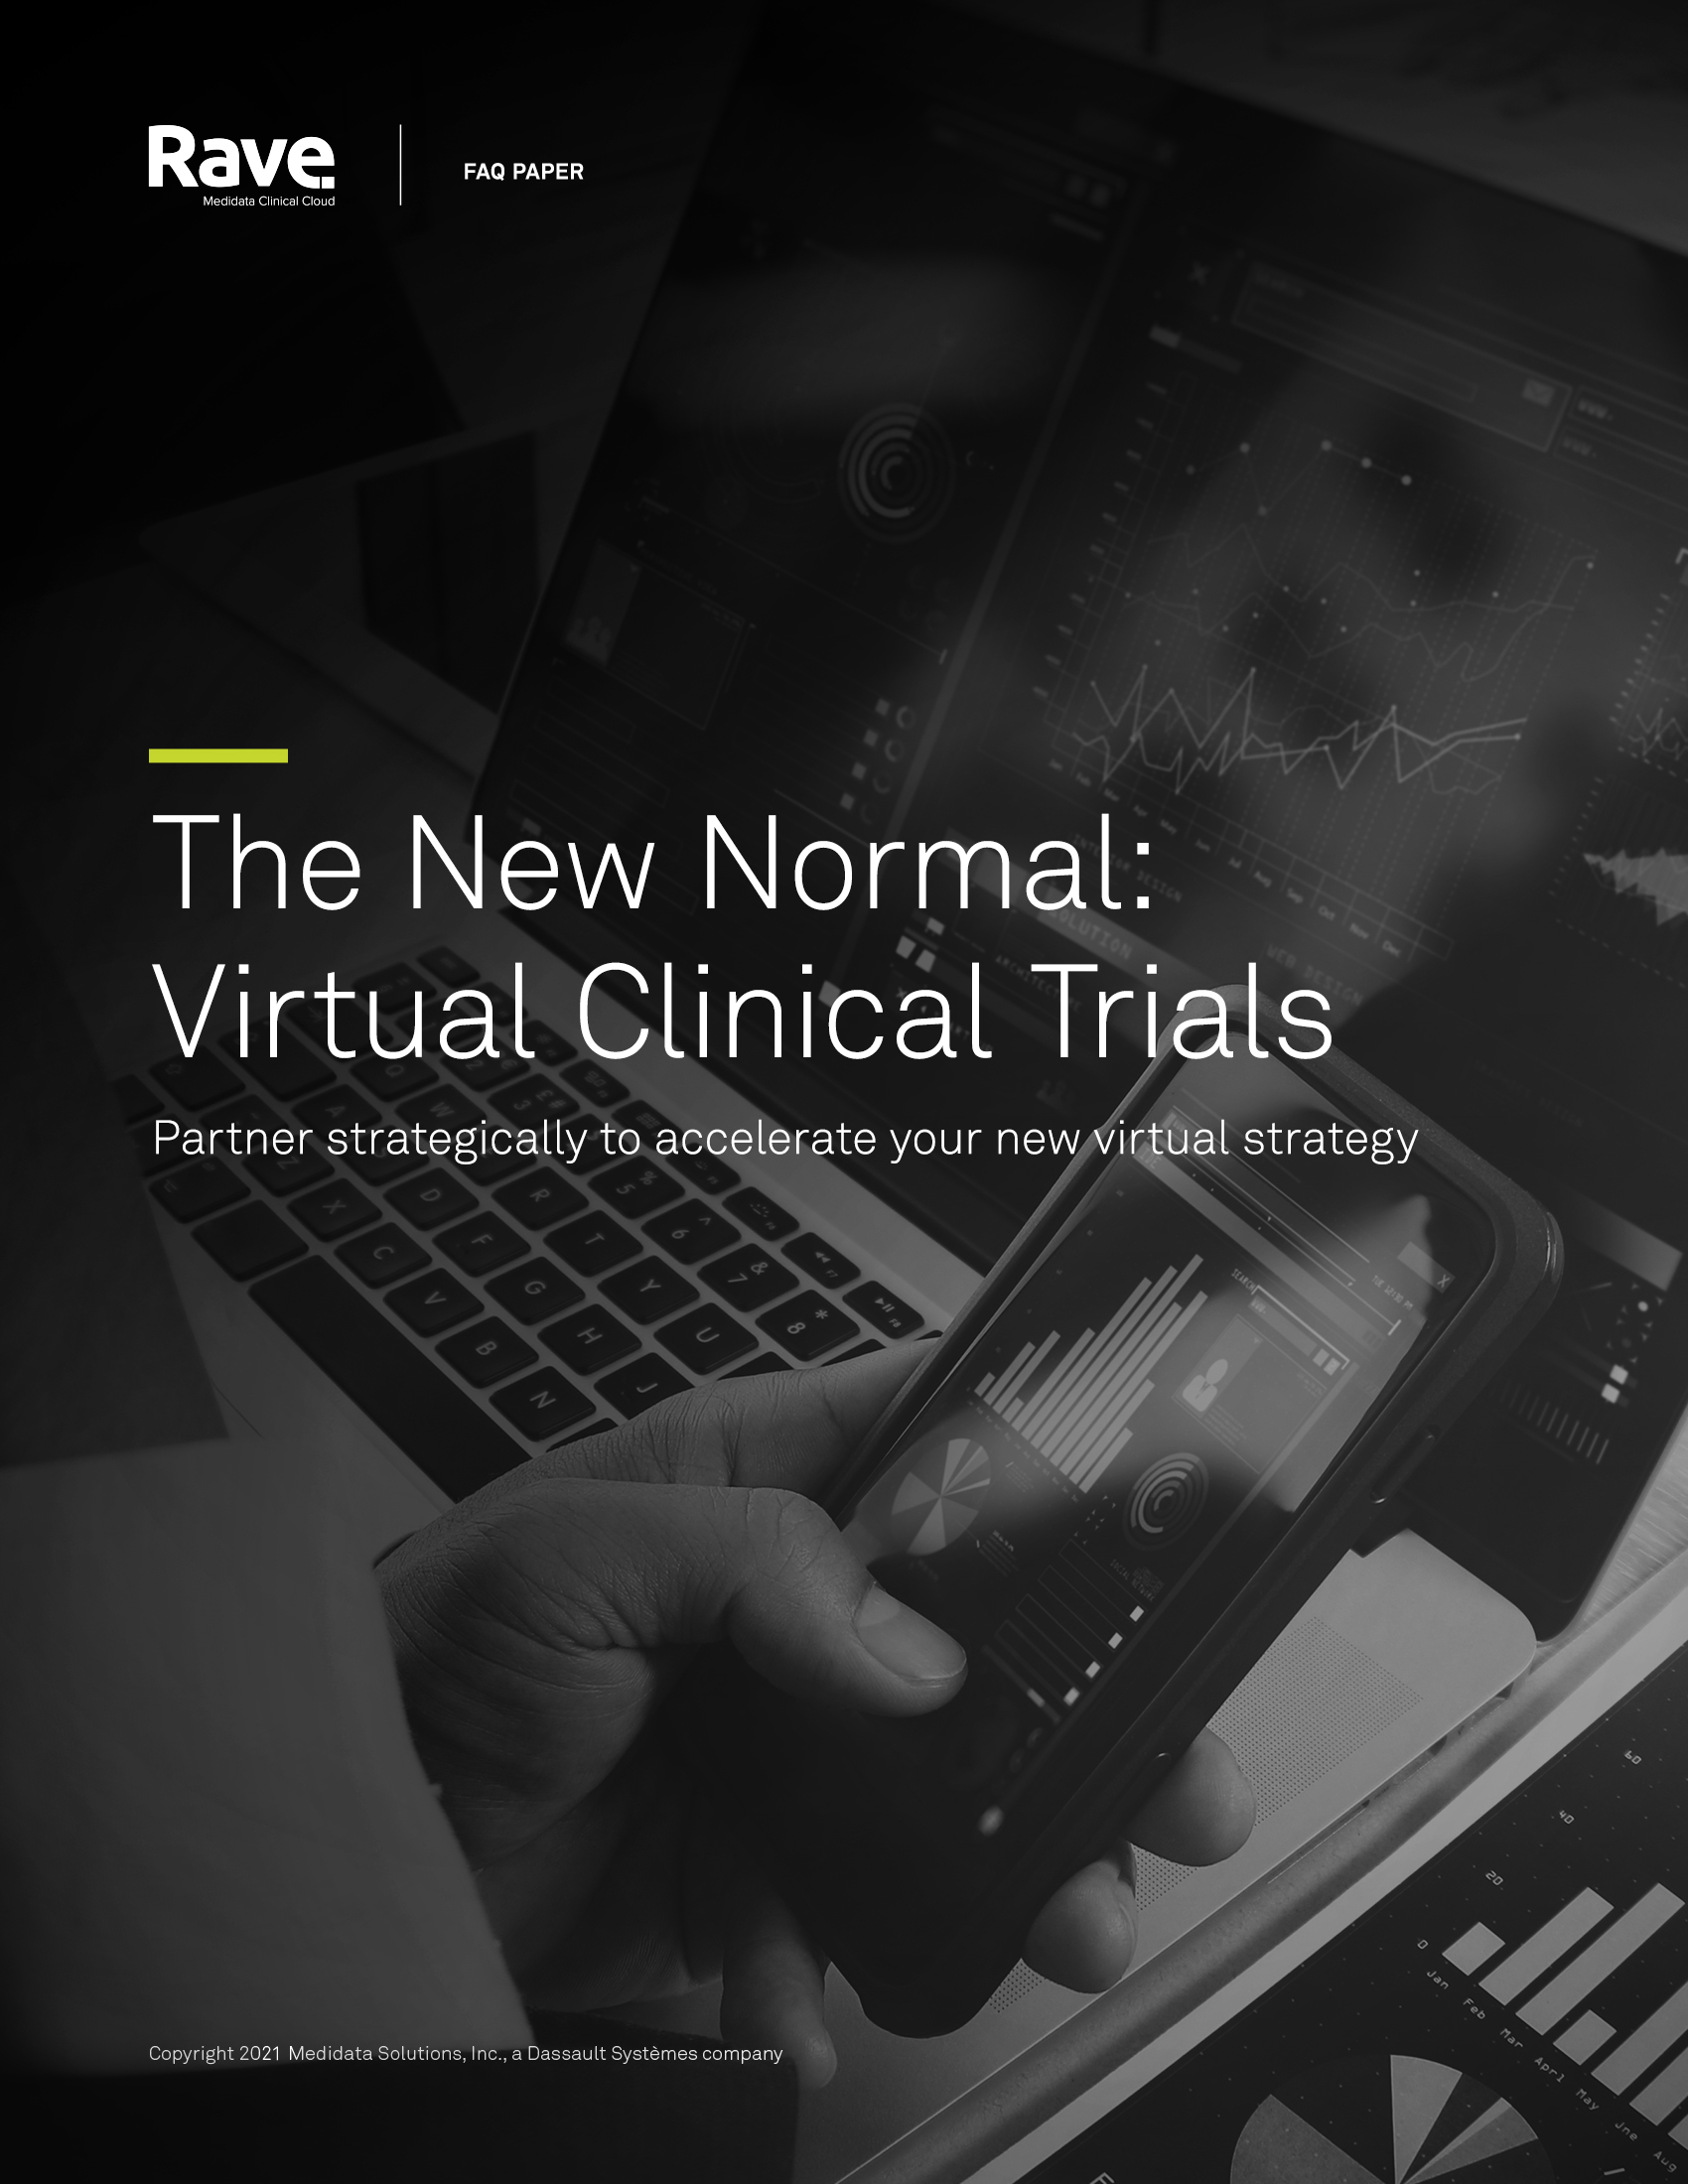 The New Normal: Virtual Clinical Trials